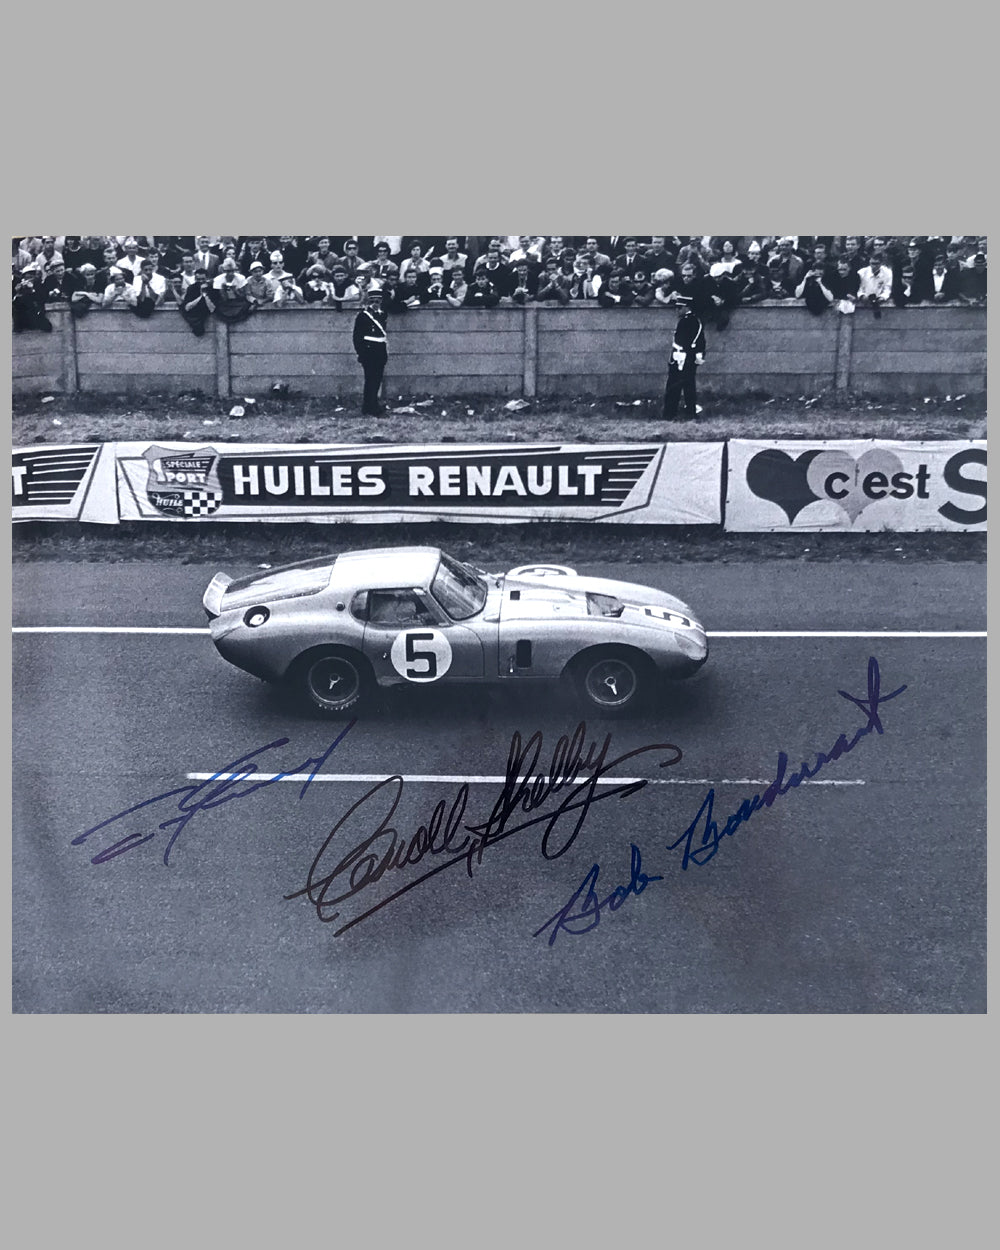 1964 - 24 Hours of Le Mans autographed photograph of the Ford Cobra Daytona Coupe